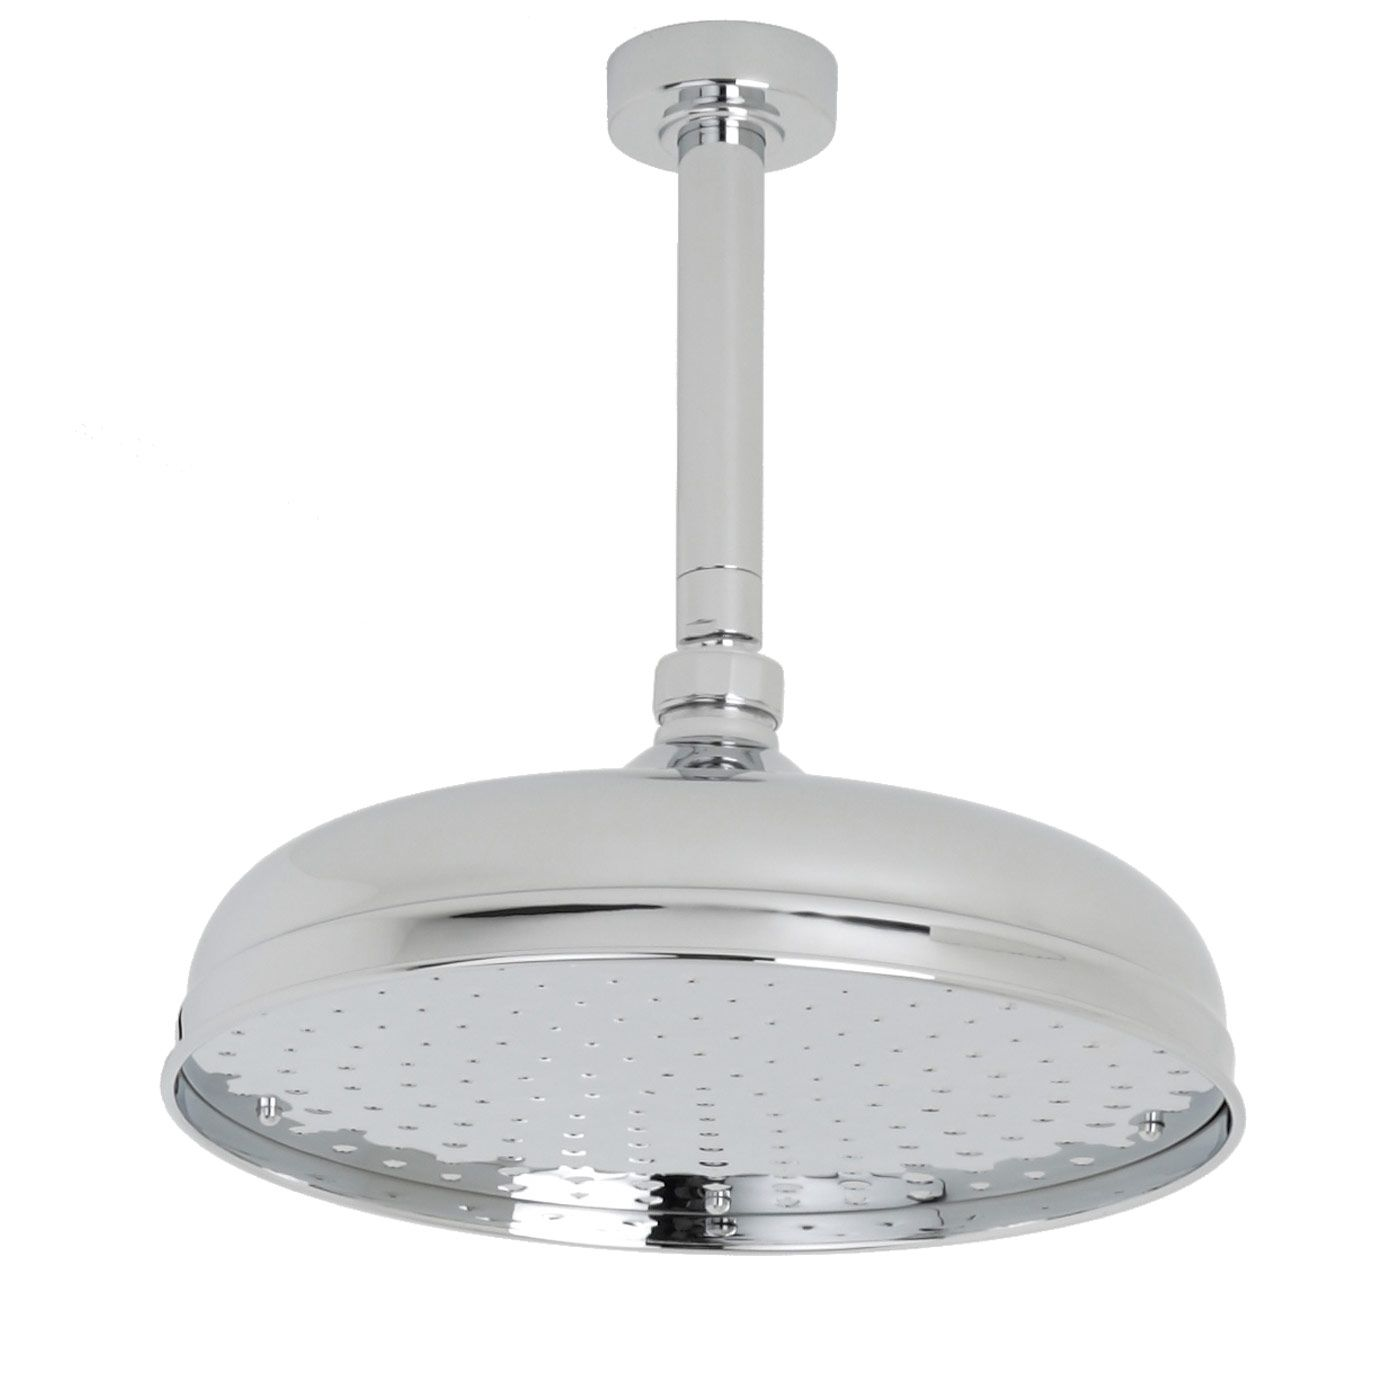 "Valquest 12"" Traditional Shower Head with Round Ceiling Arm"